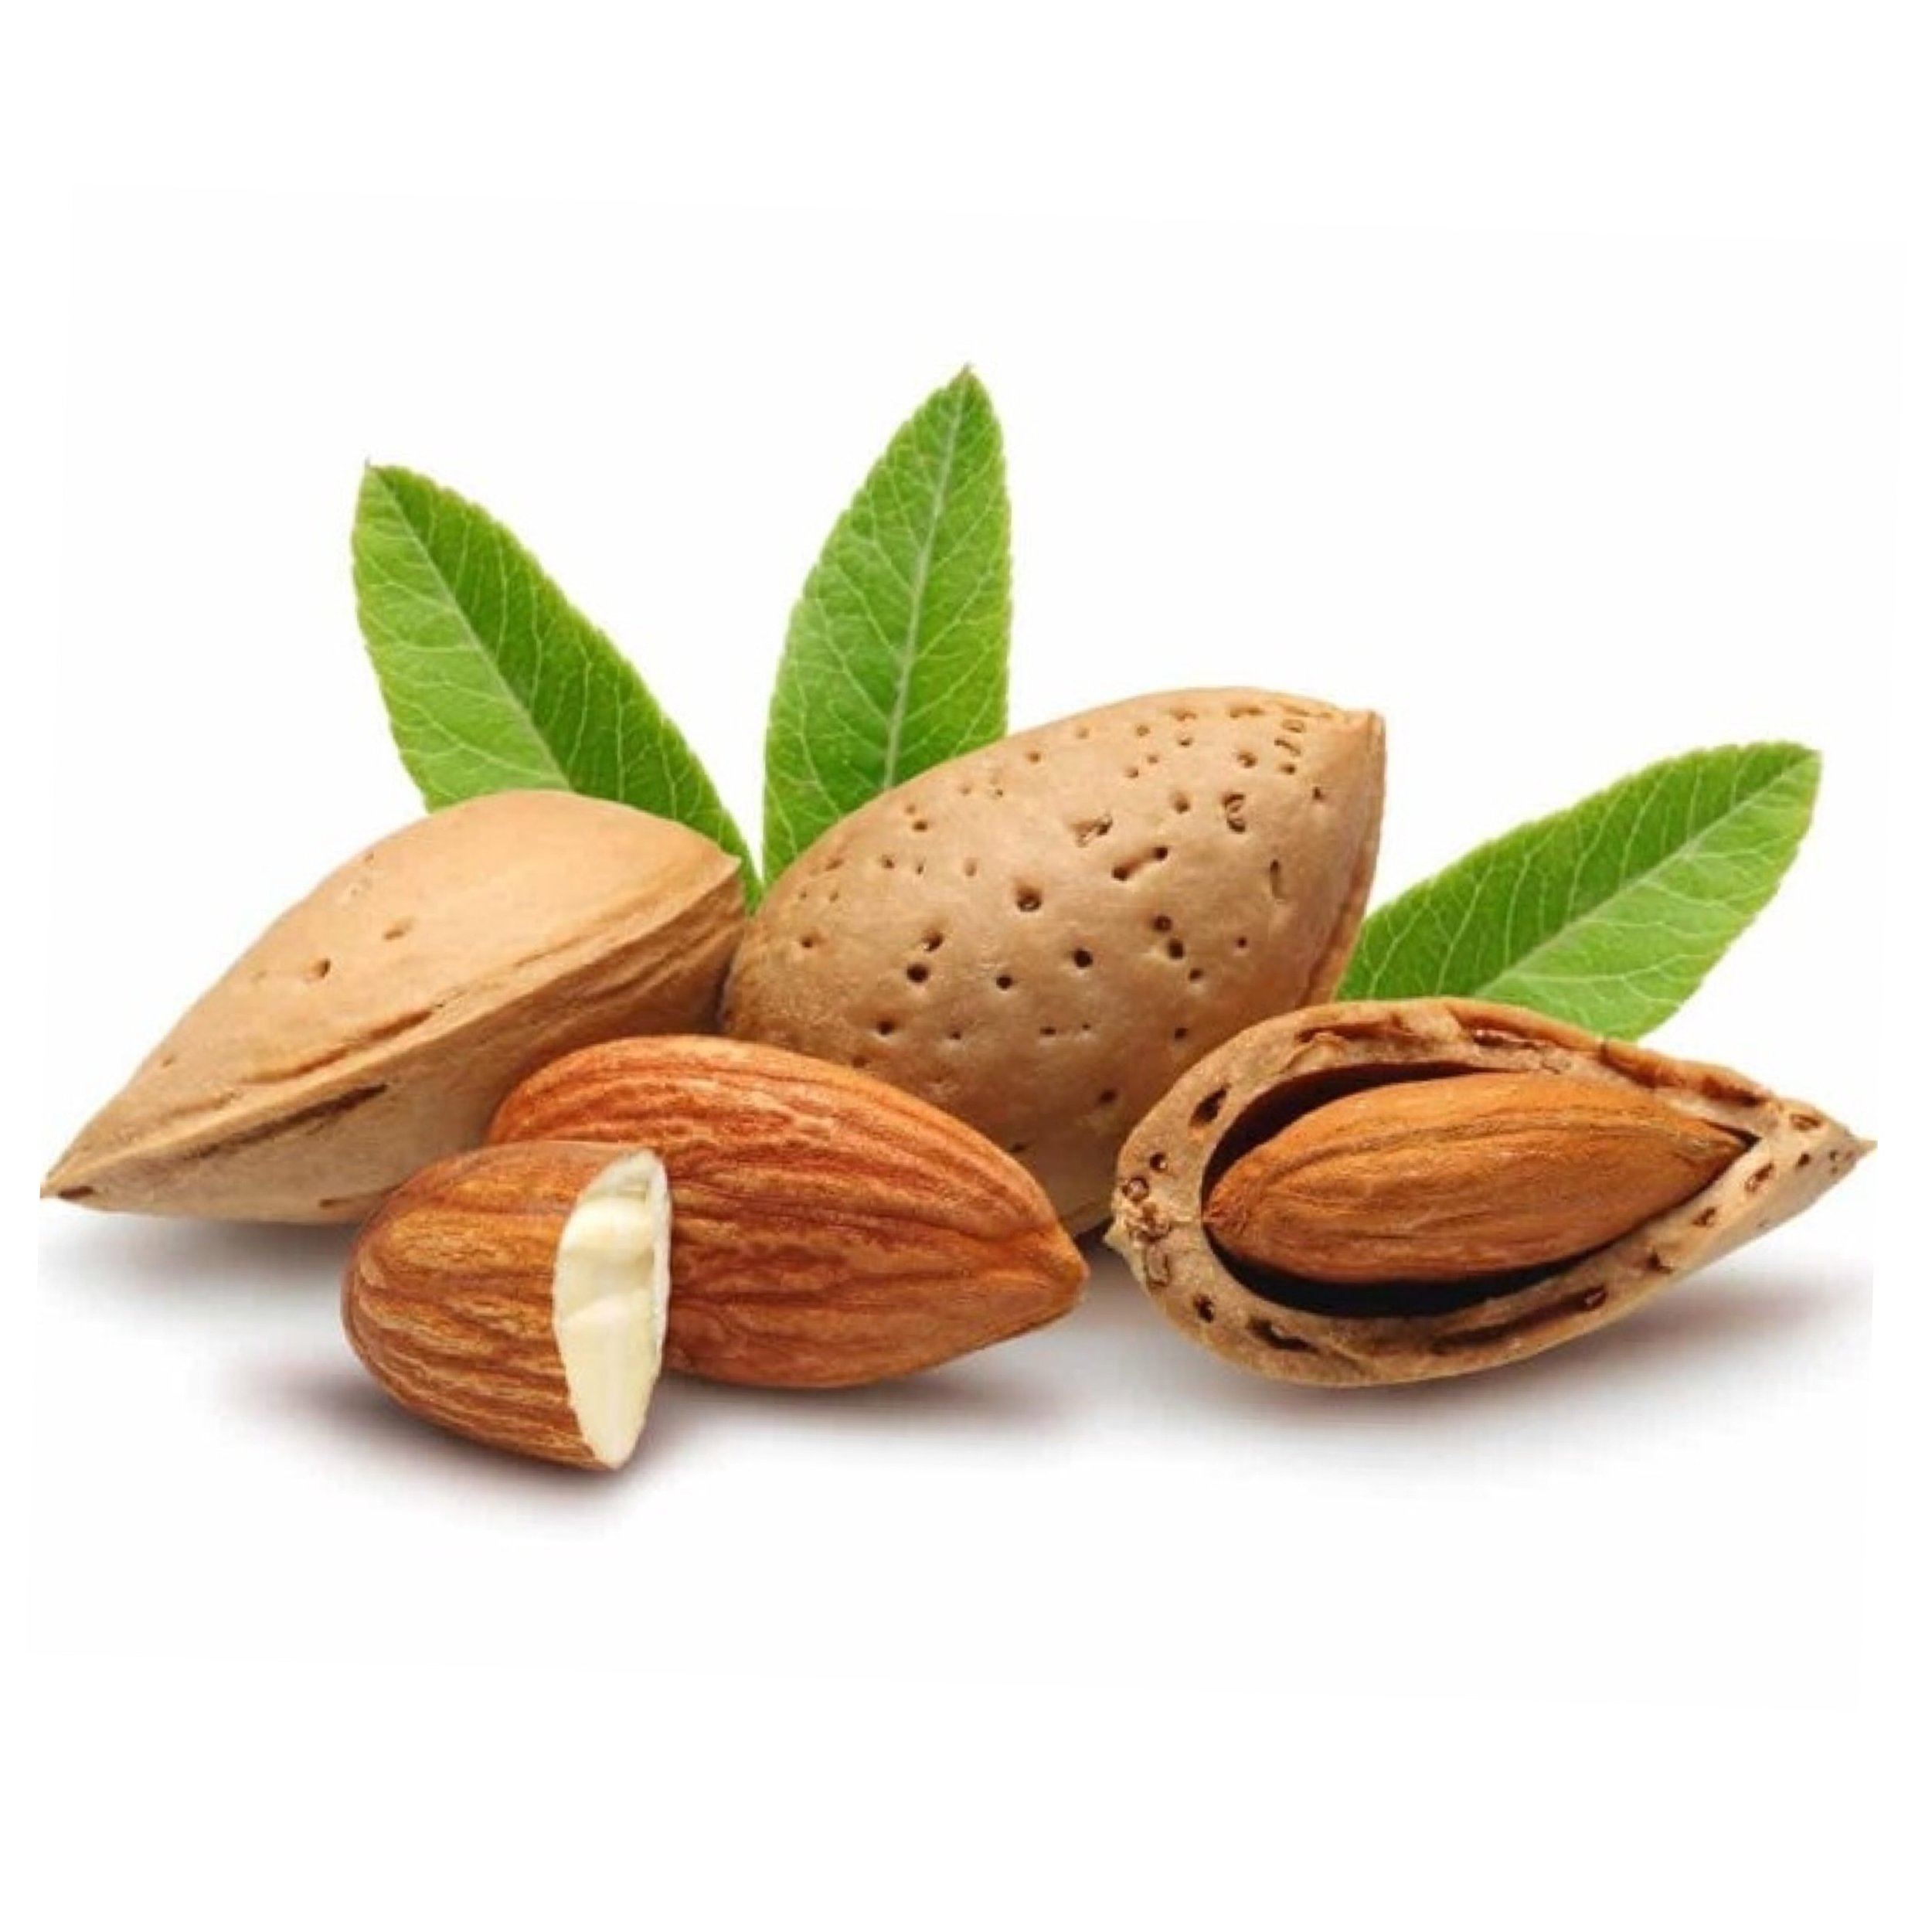 ALMOND OIL   Highly rich in Vitamin E and an excellent natural antioxidant. Nourishing the skin, hair & nails, regenerating new skin and keeping in moisture